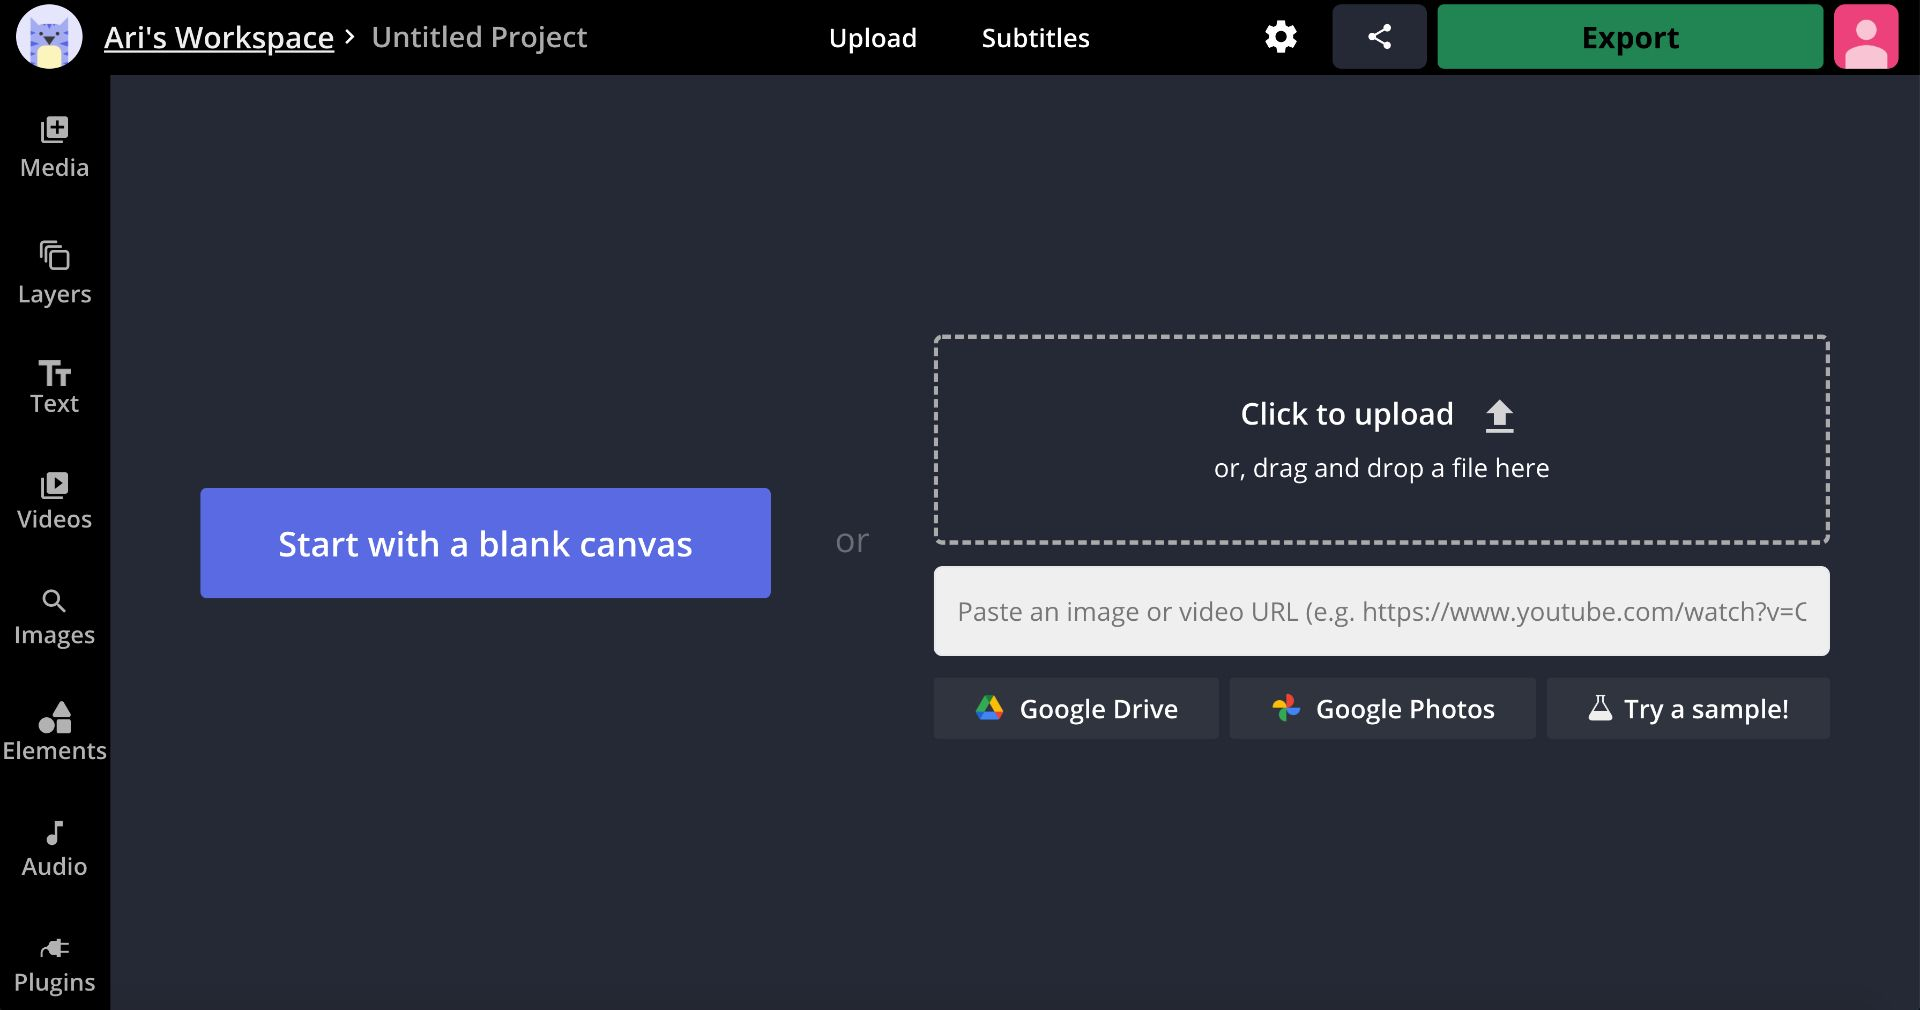 A screenshot of the Kapwing upload modal for videos.